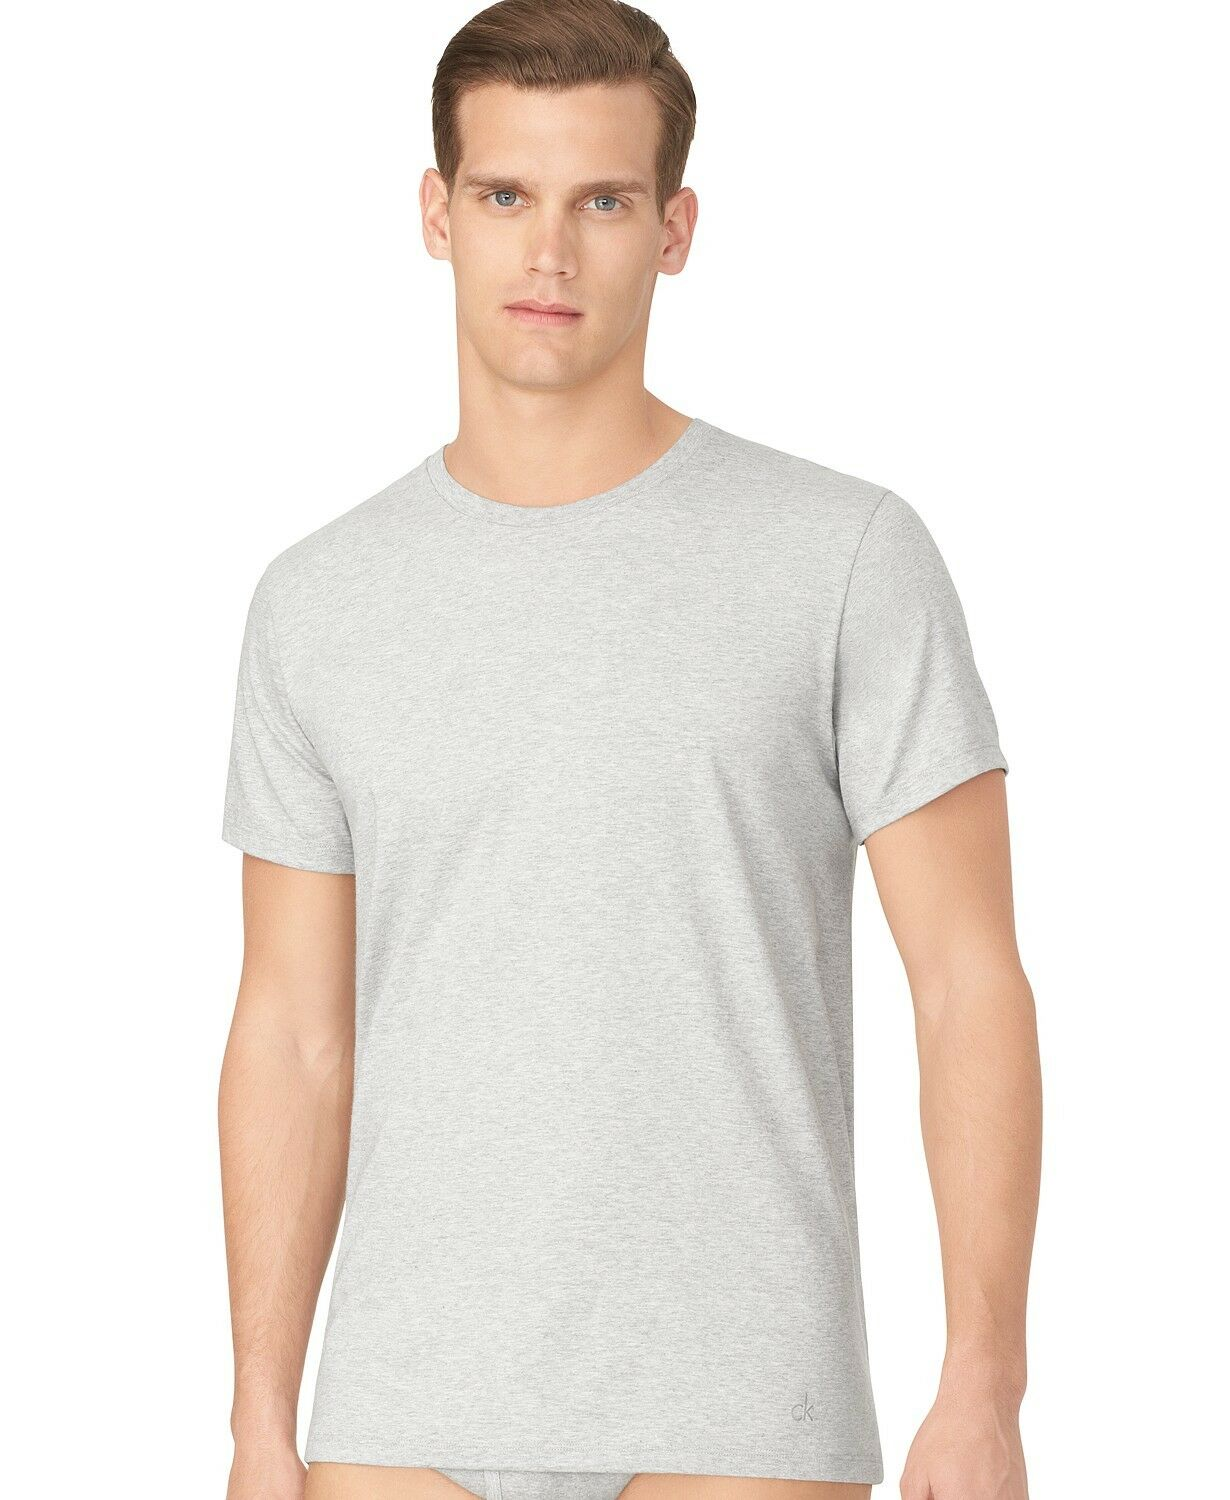 Three (3) Pack NEW Calvin Klein Men's Stretch Cotton V-Neck OR Crew Neck T-Shirt